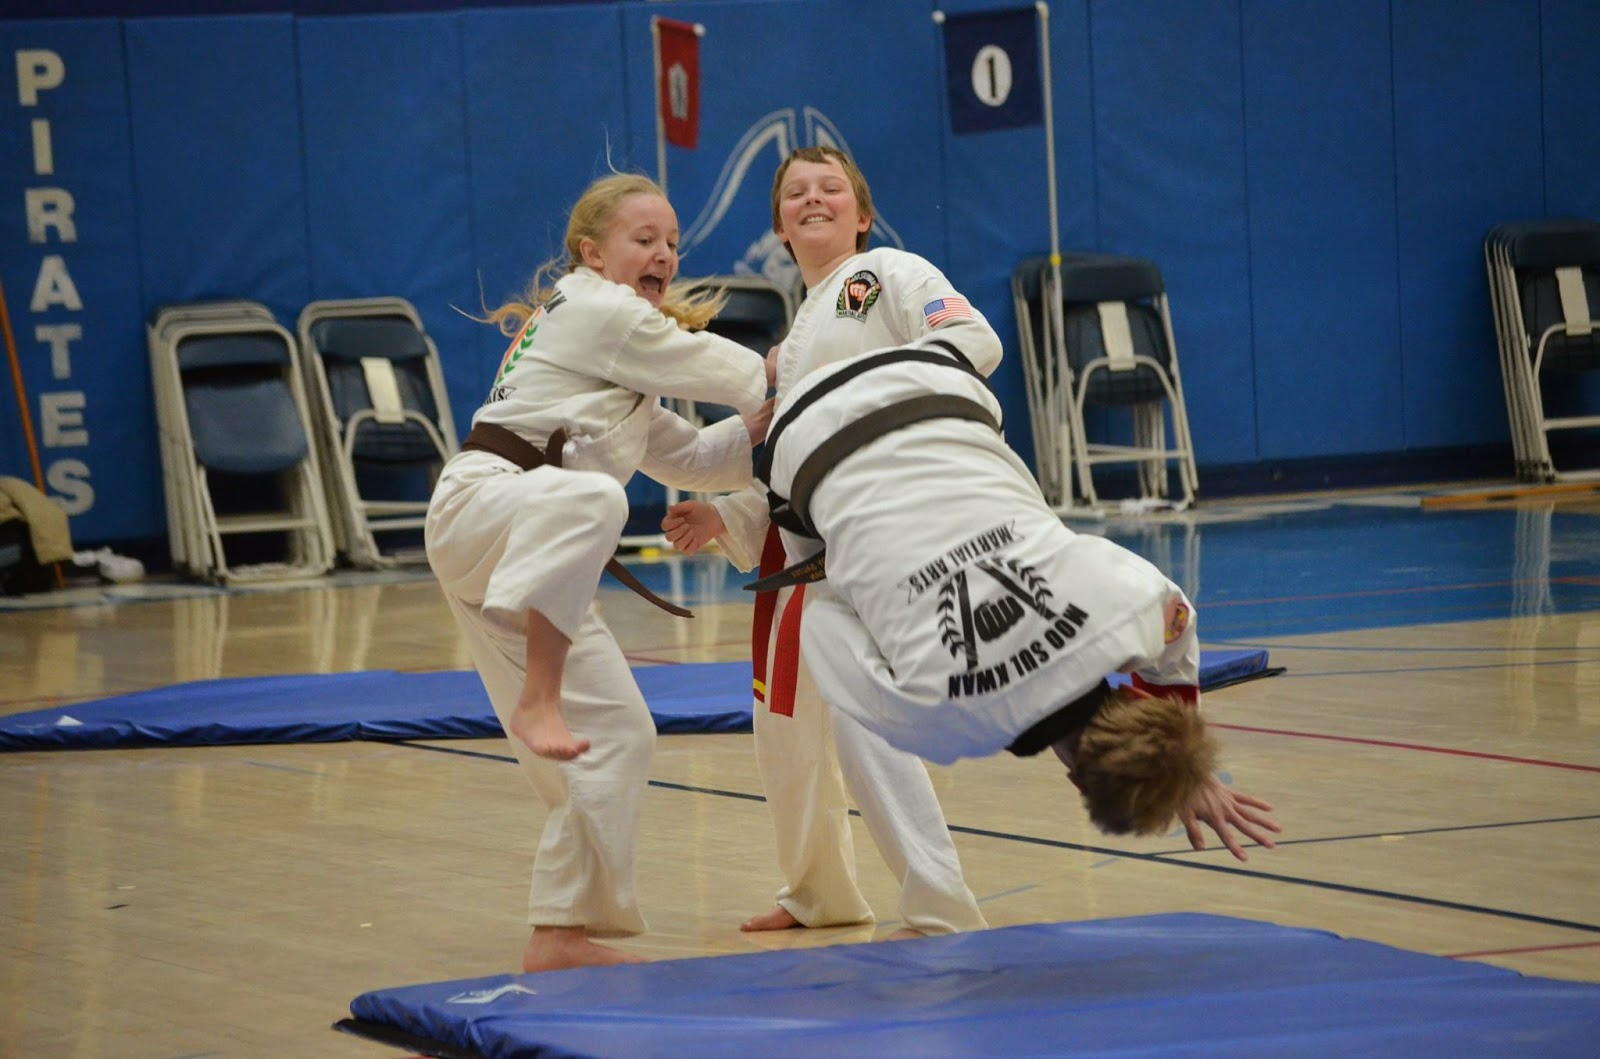 Martial arts children defending themselves with self-defense